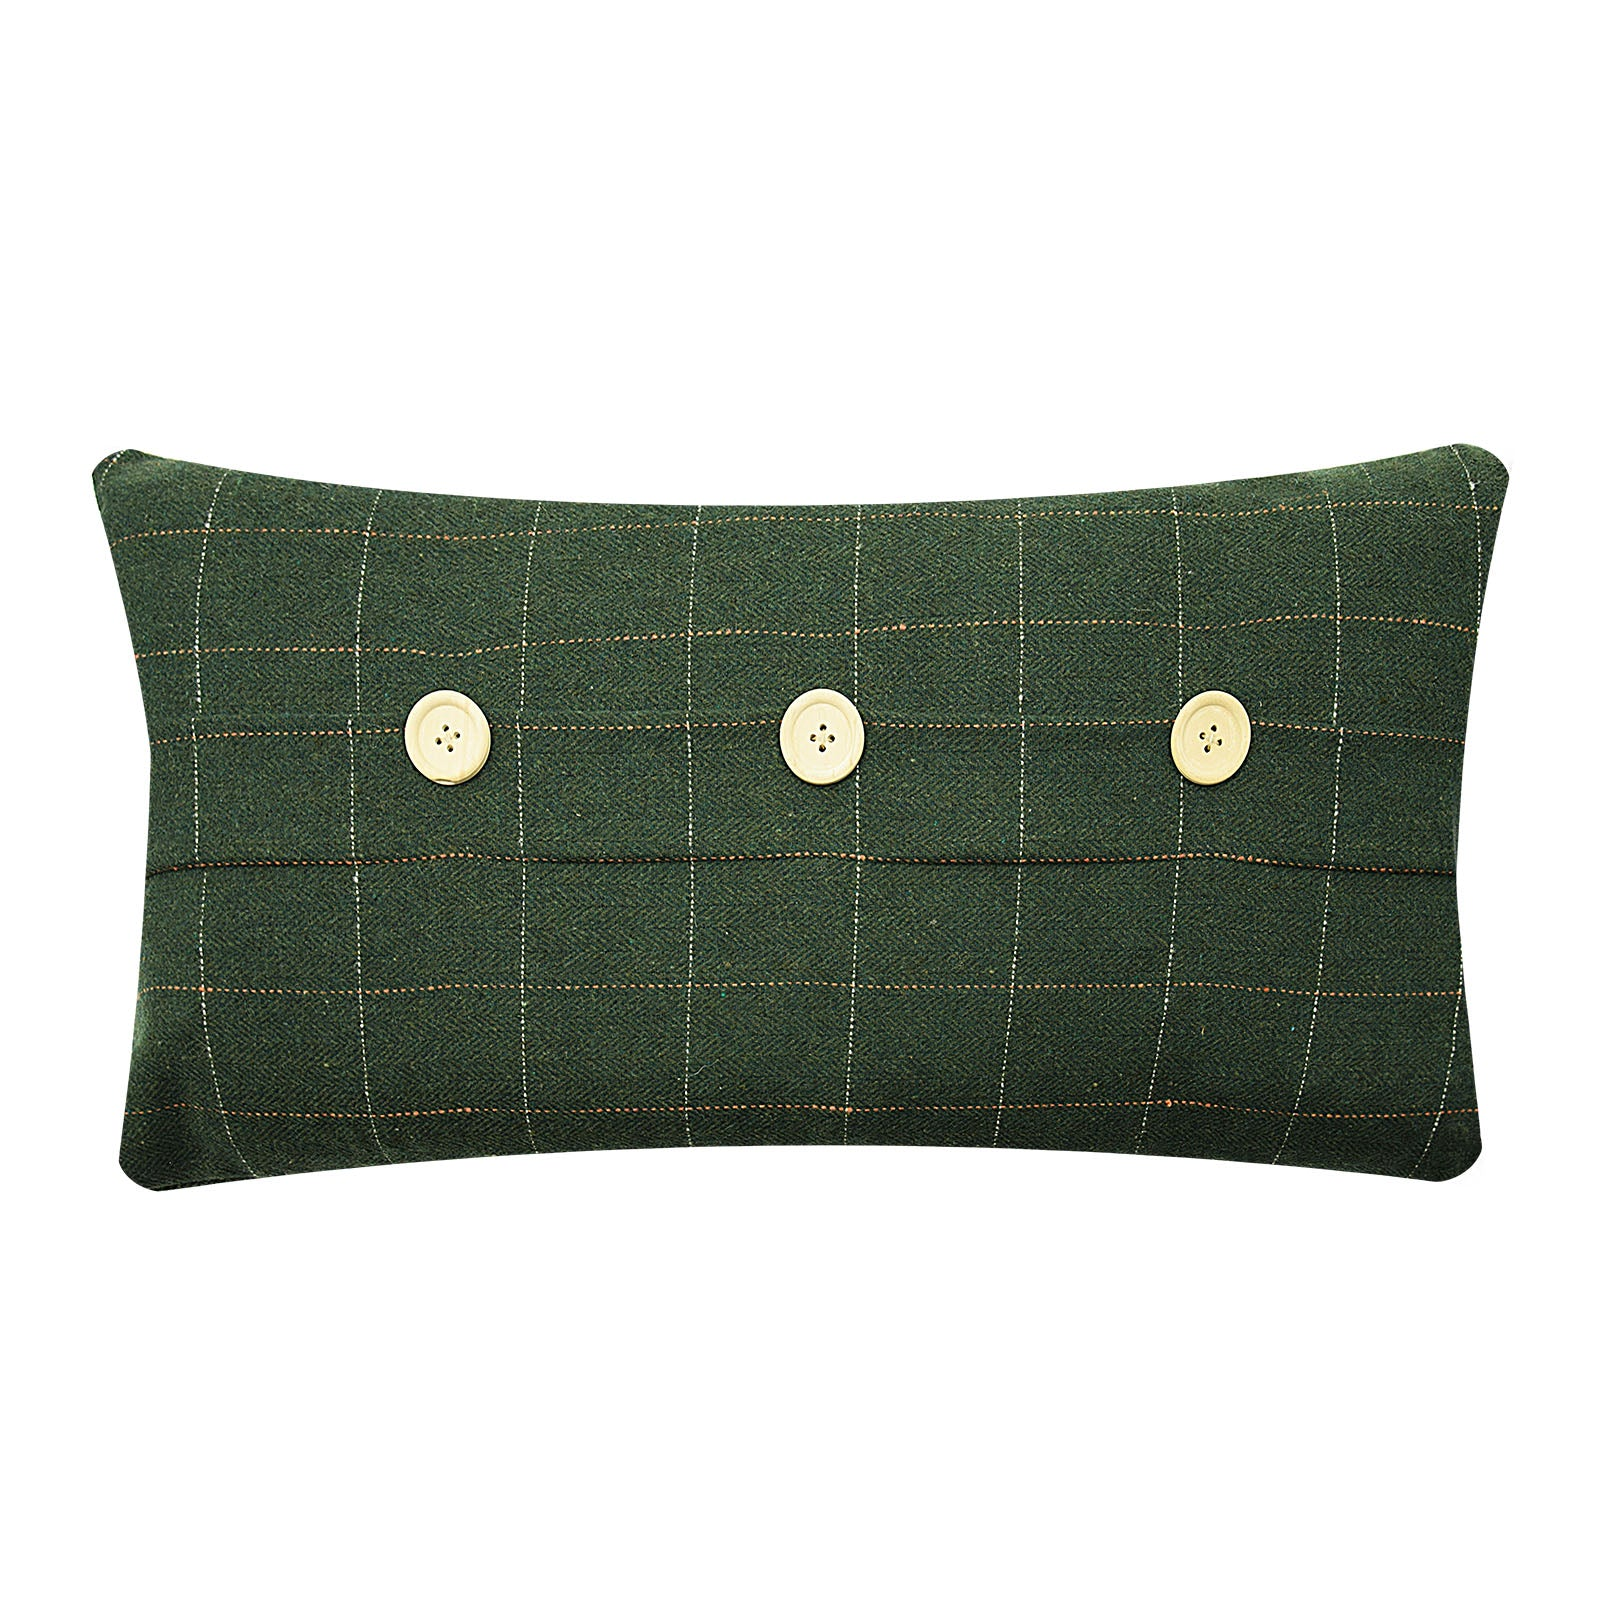 30x60 CM Cushion Cover  1890A-012-Green - ebarza